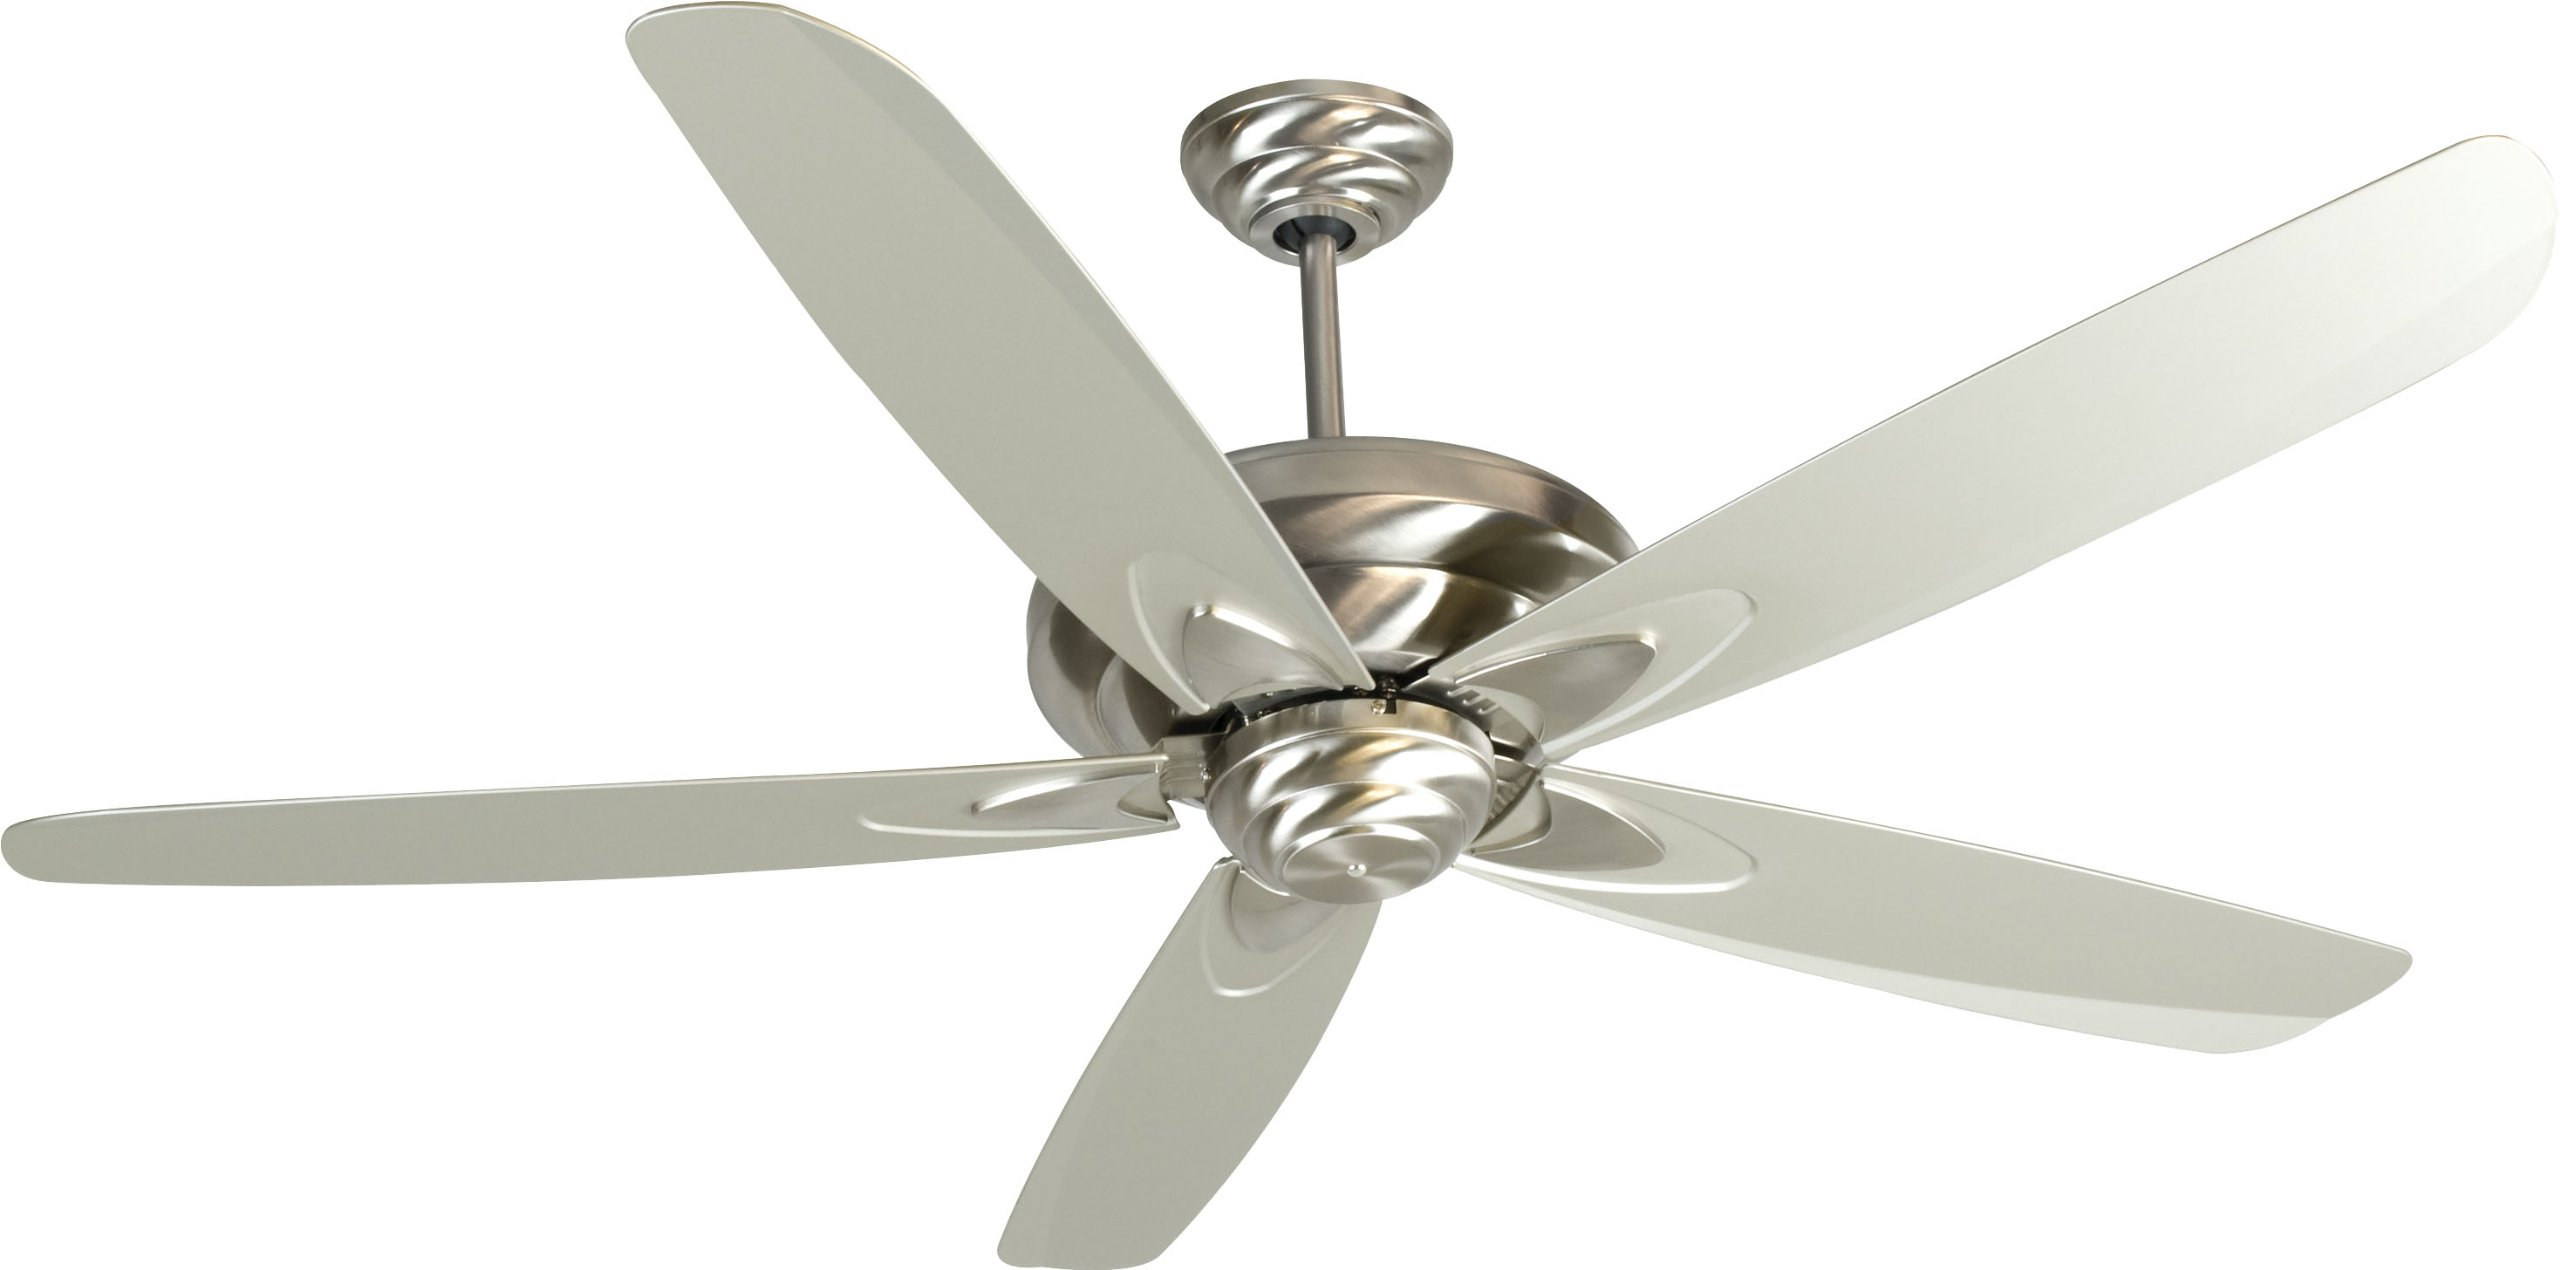 Craftmade ZE56SS5 Ceiling Fan with Blades Included, 56''